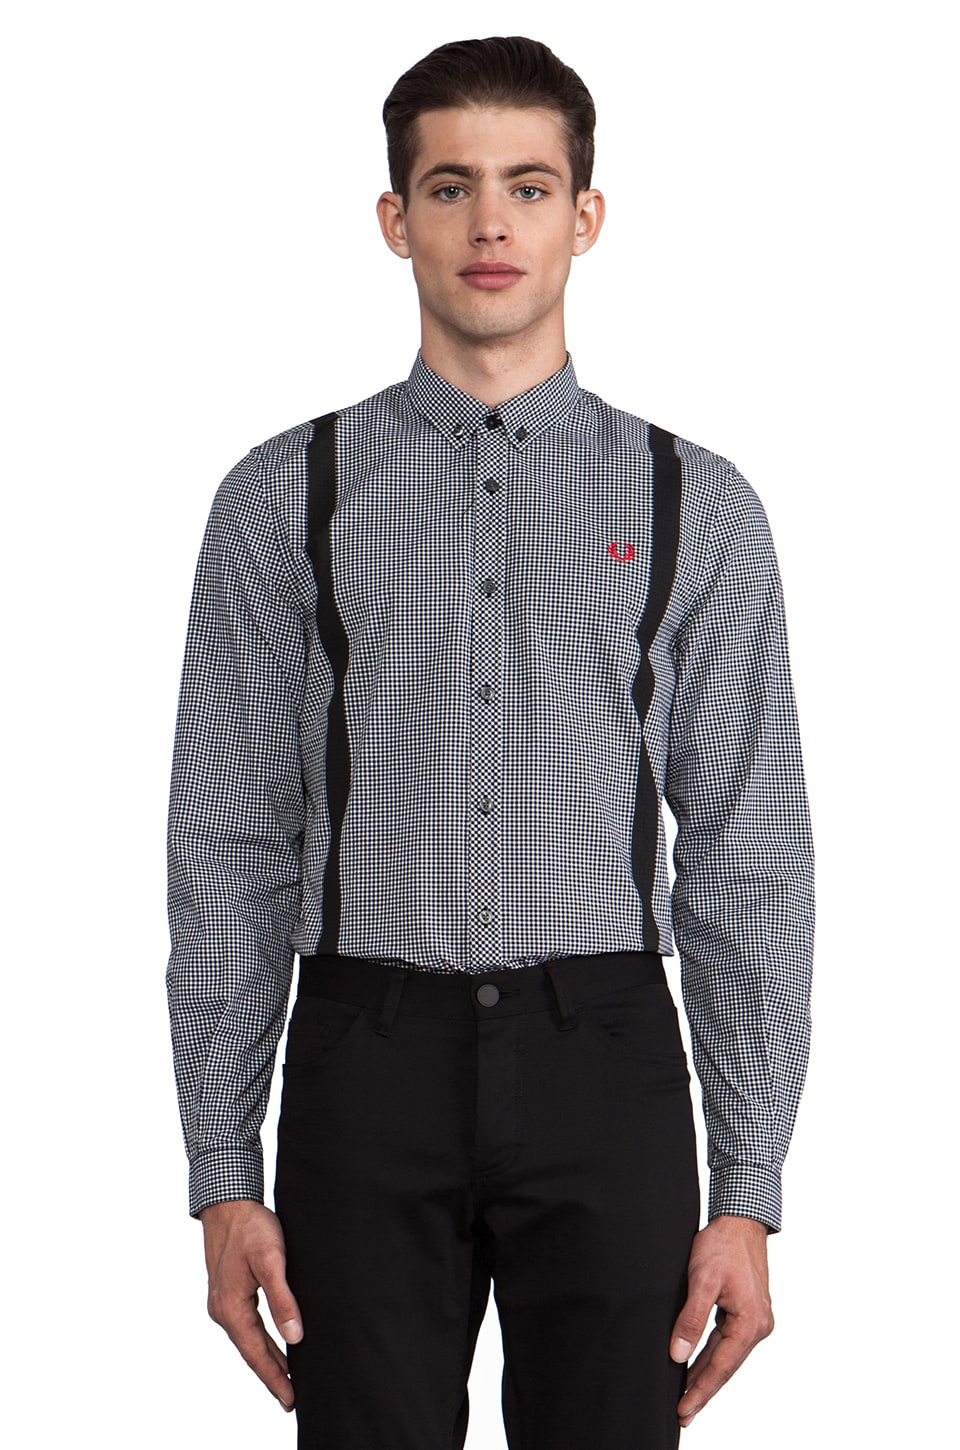 Fred Perry 45's Gingham Print Button Down in Black